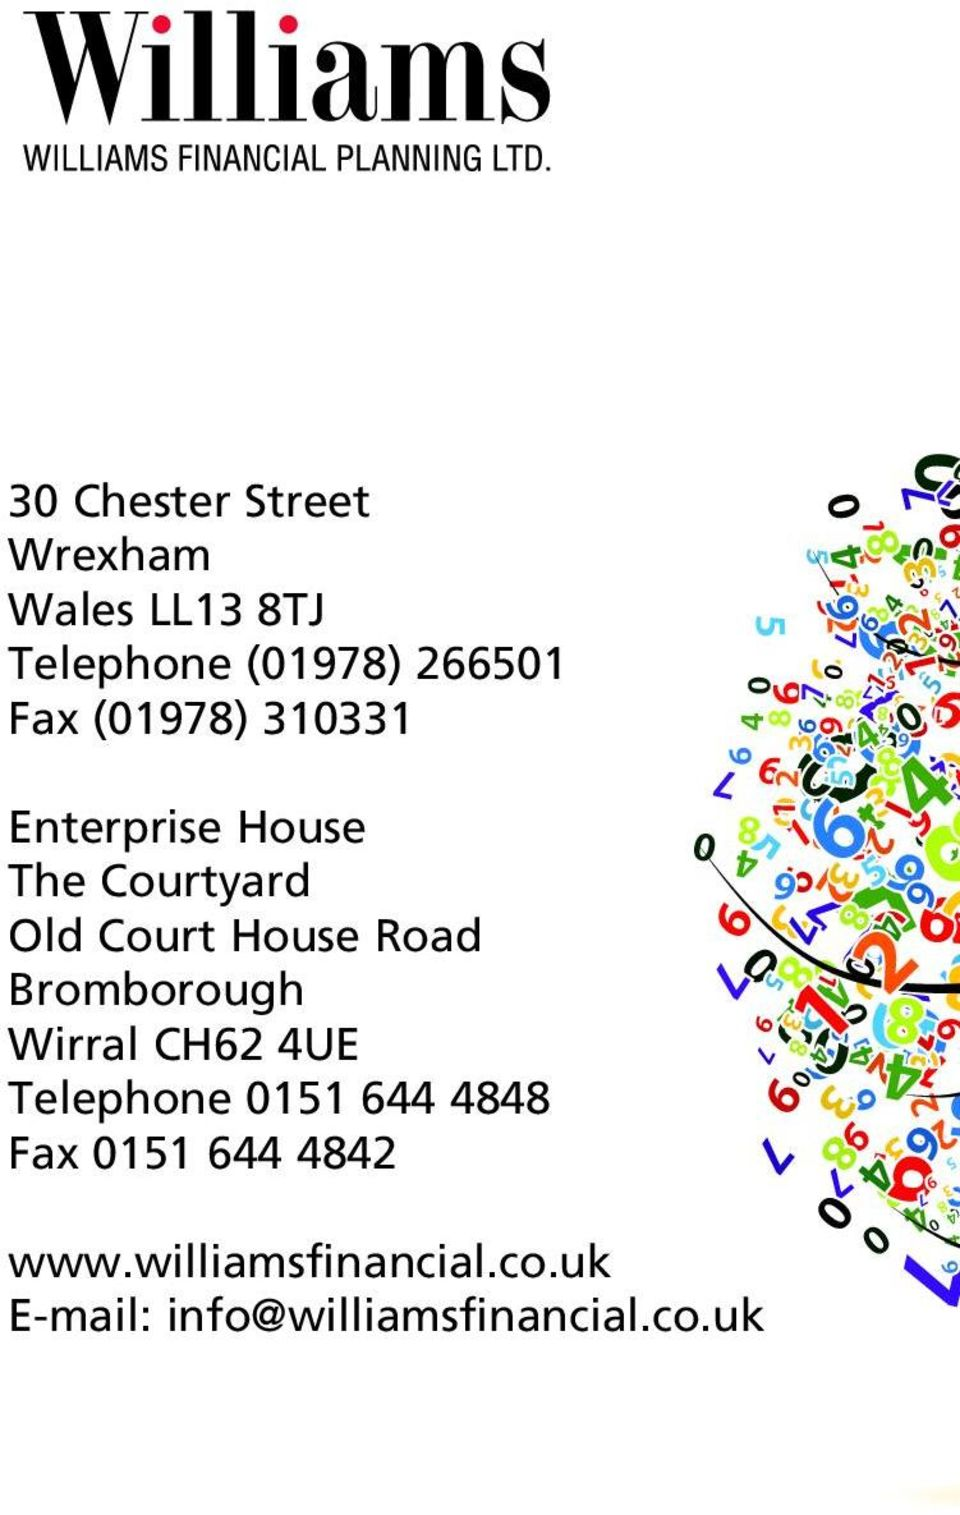 Road Bromborough Wirral CH62 4UE Telephone 0151 644 4848 Fax 0151